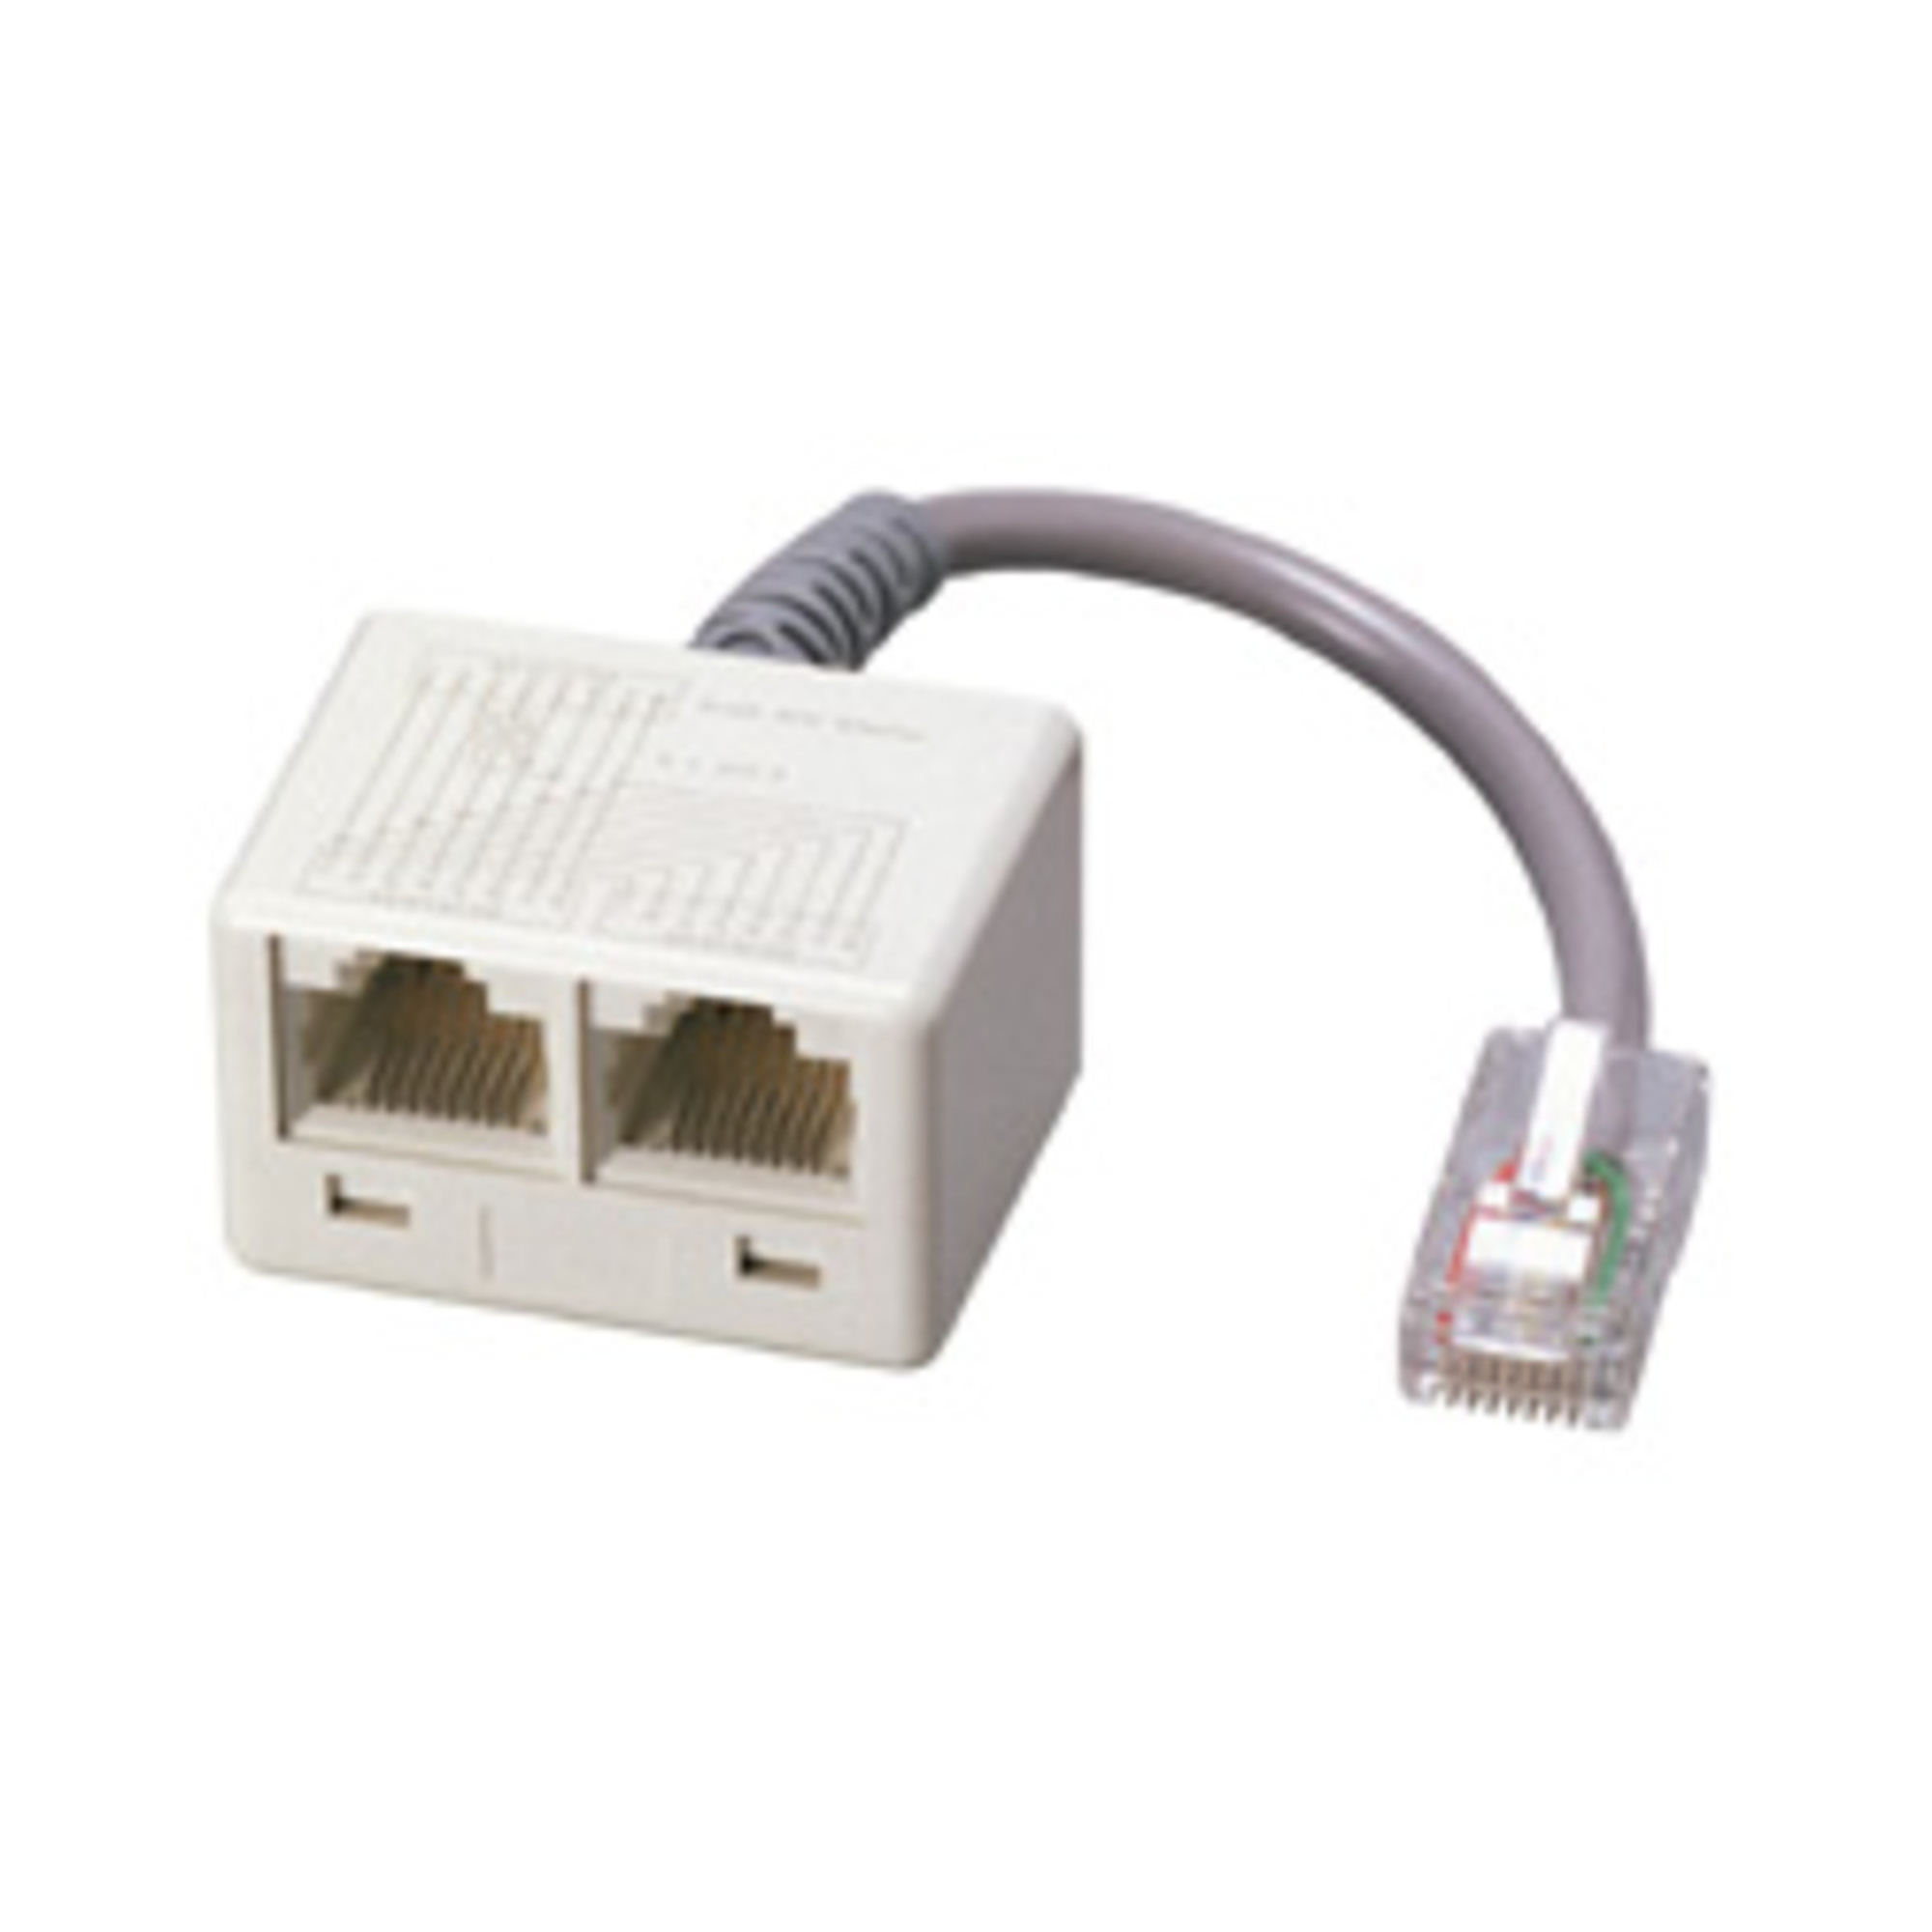 Adapter-ISDN WE8 - 2xWE8-R 0,1m